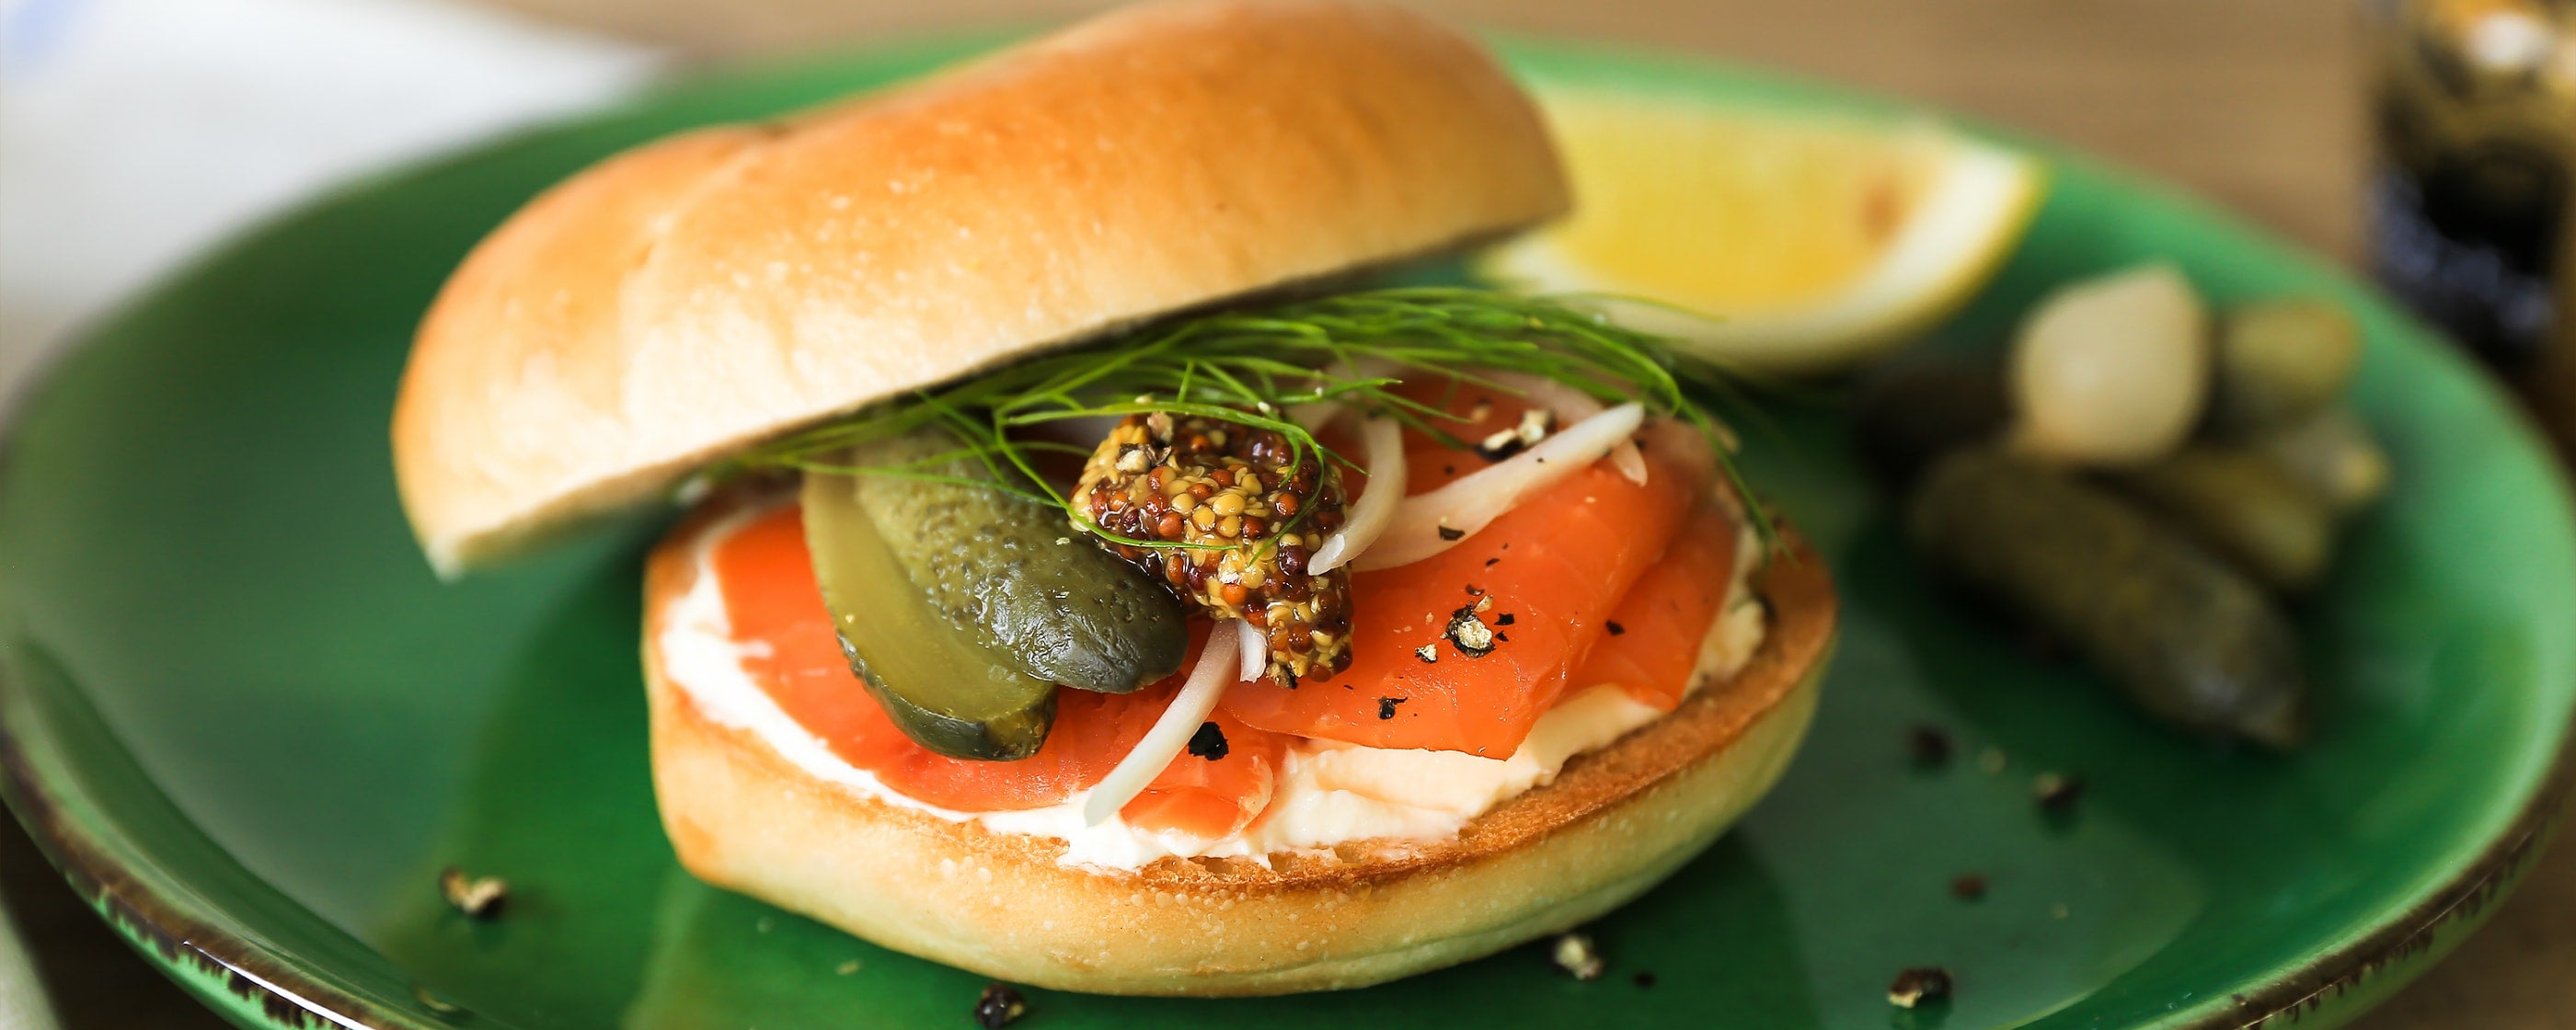 Smoked Salmon and <br>Sour Cream Bagel Sandwich